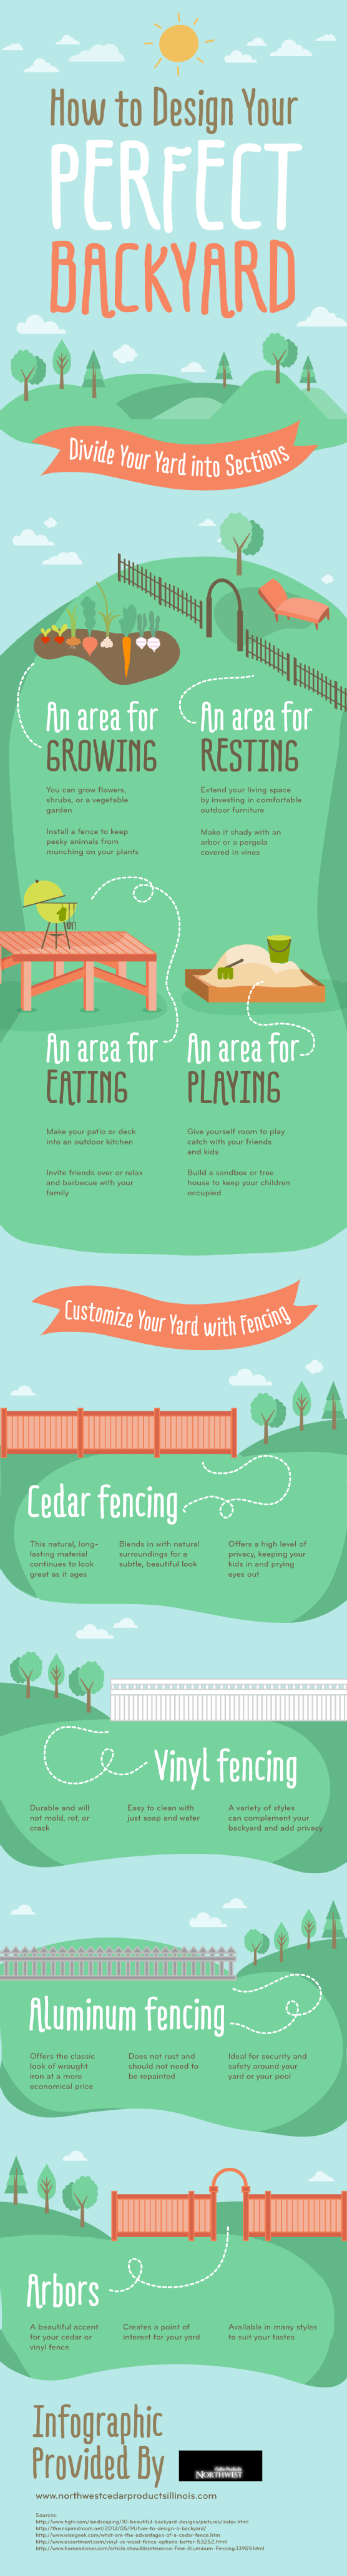 How To Design Your Perfect Backyard